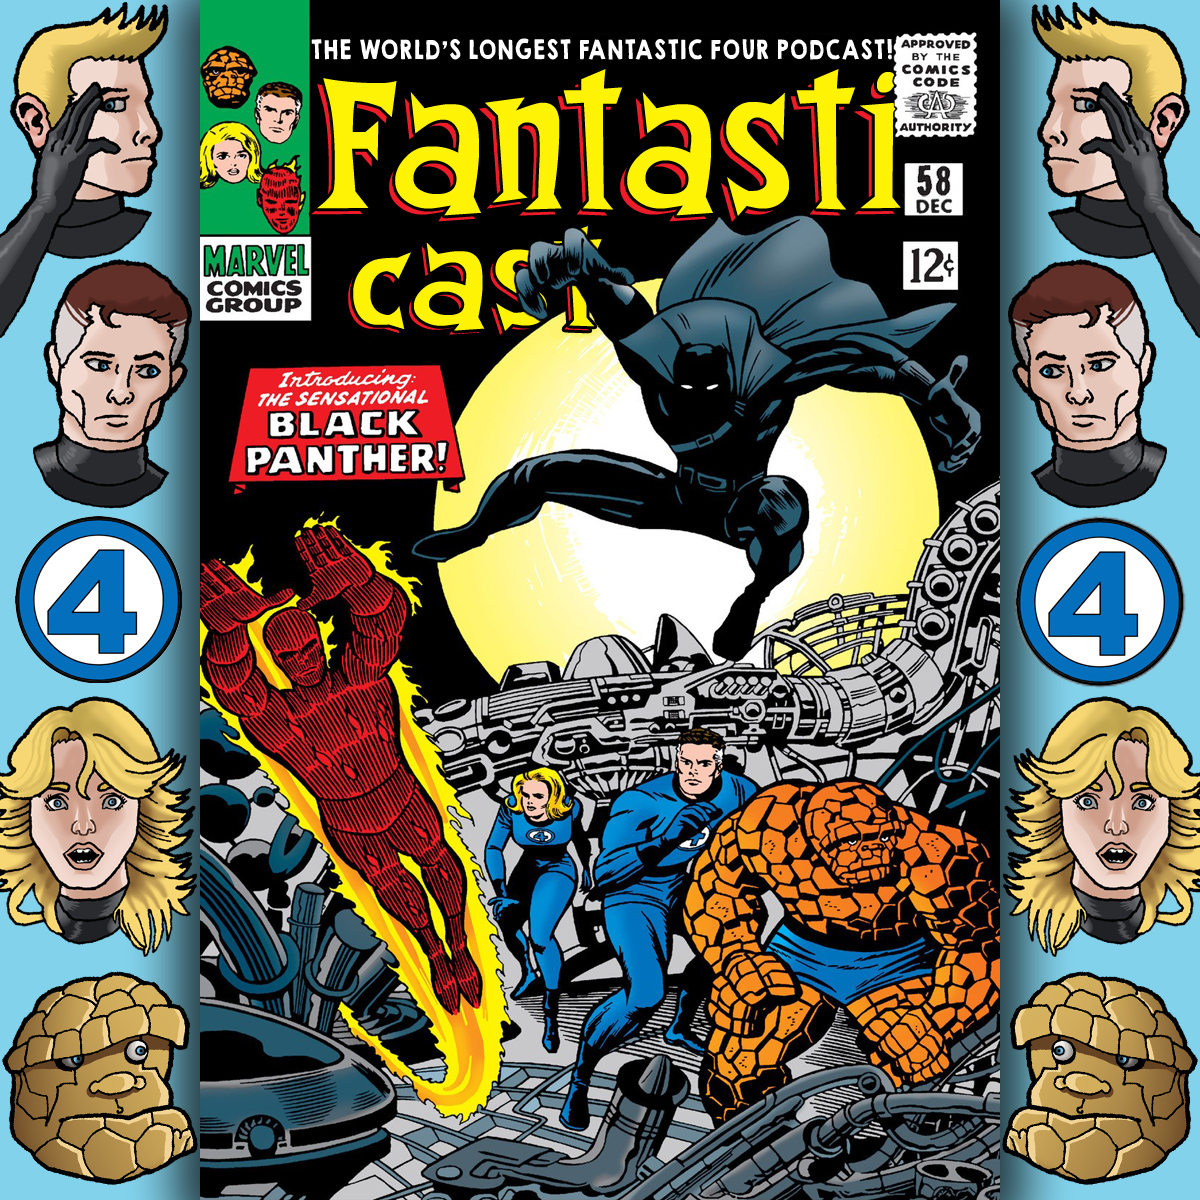 Episode 58: Fantastic Four #52 -  Introducing The Sensational Black Panther